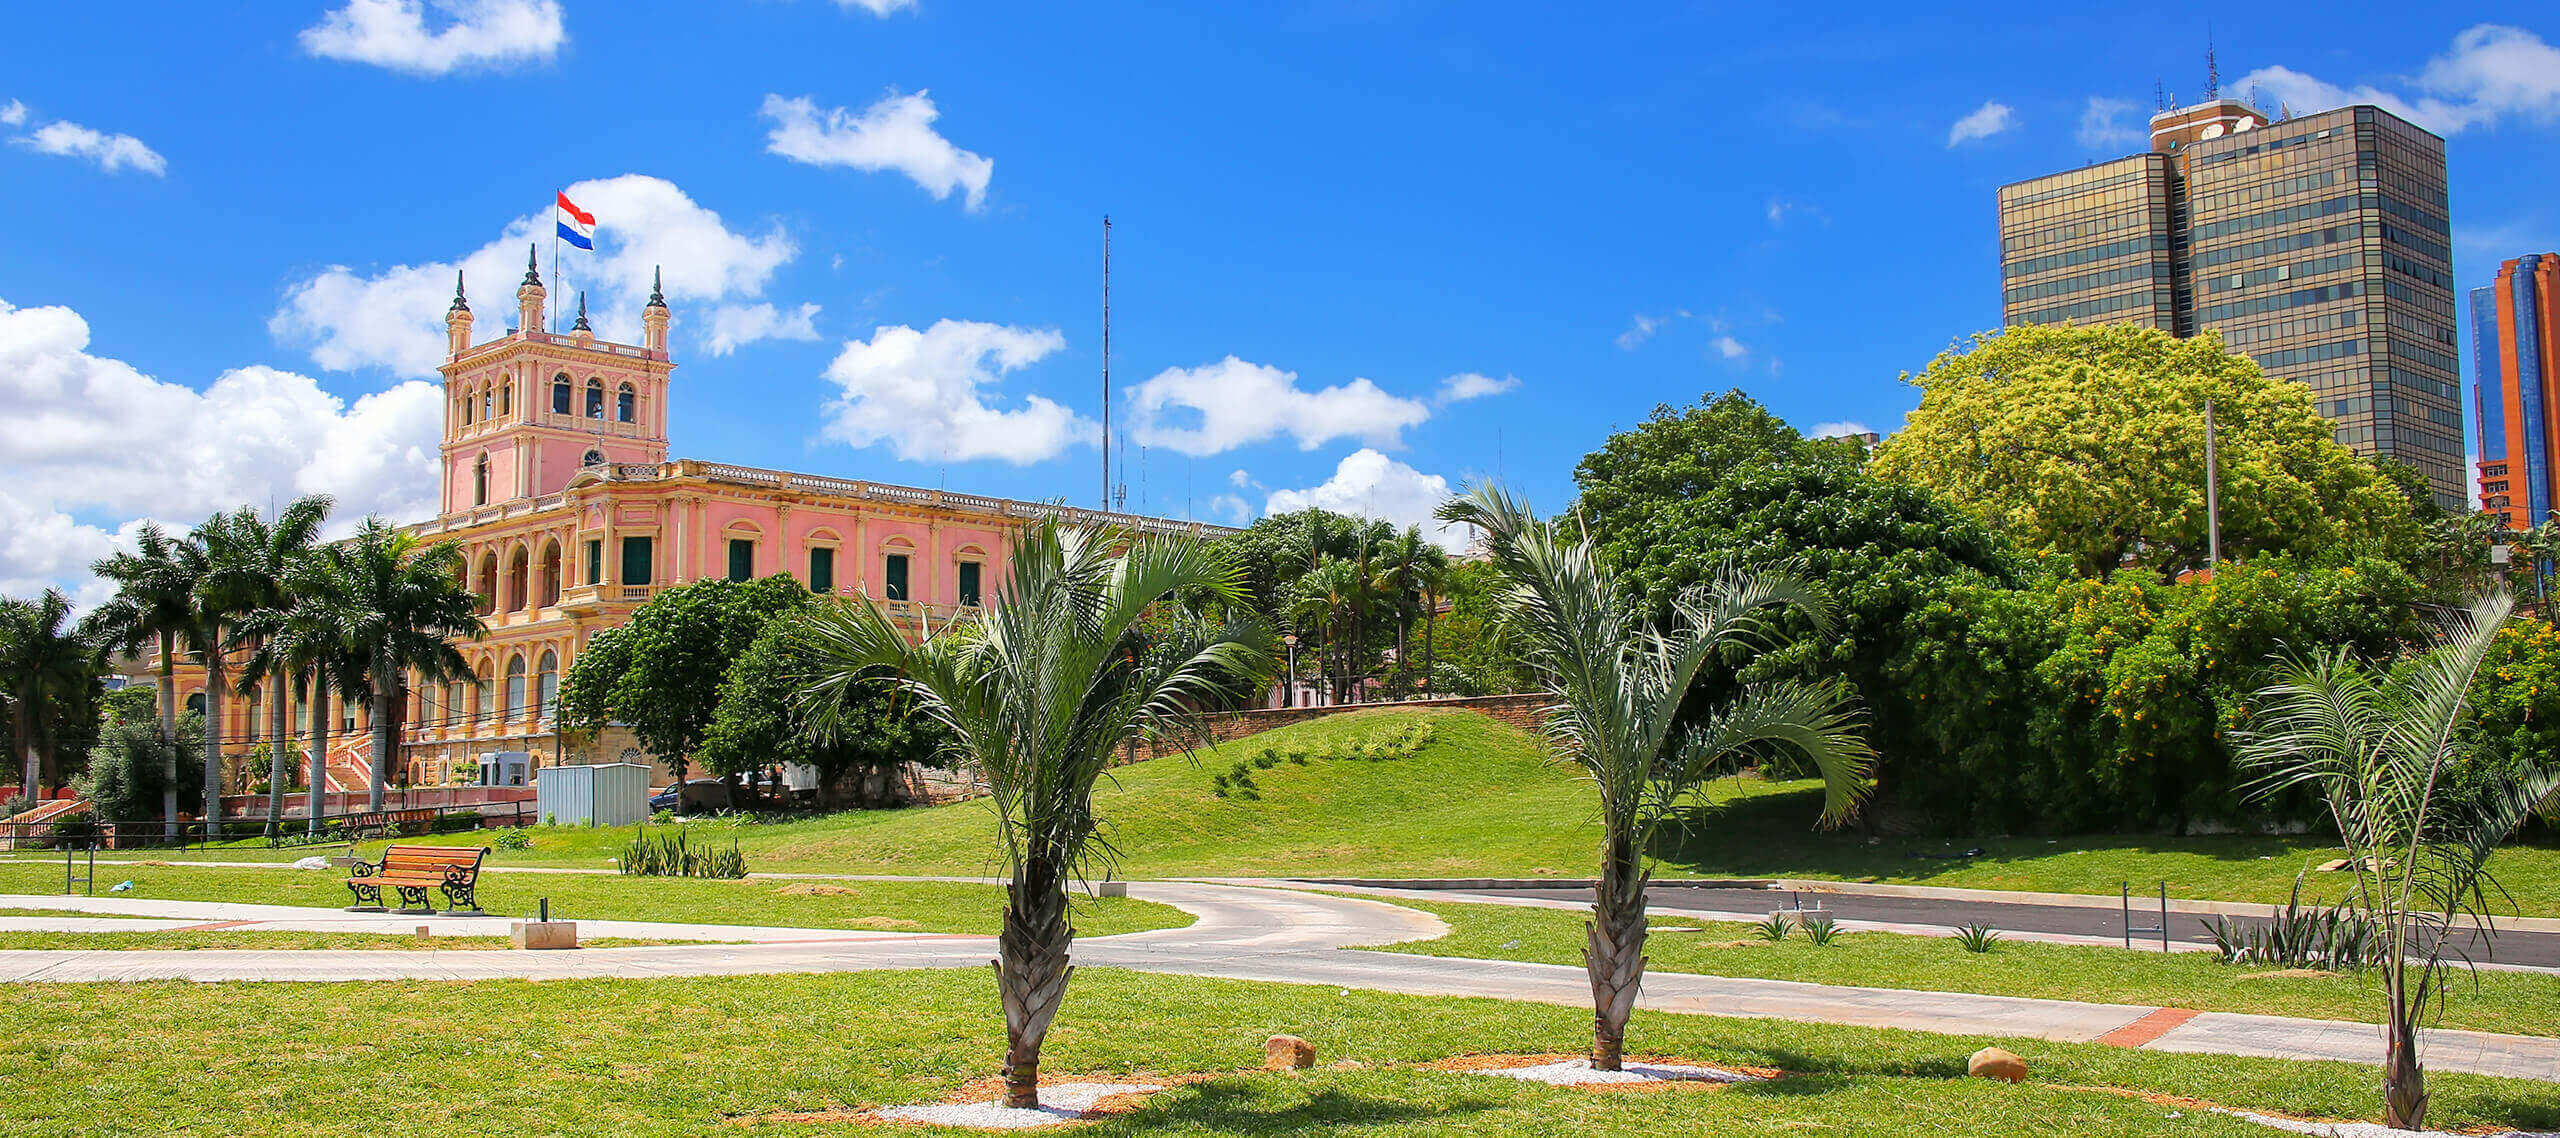 buildings in paraguay on a sunny day